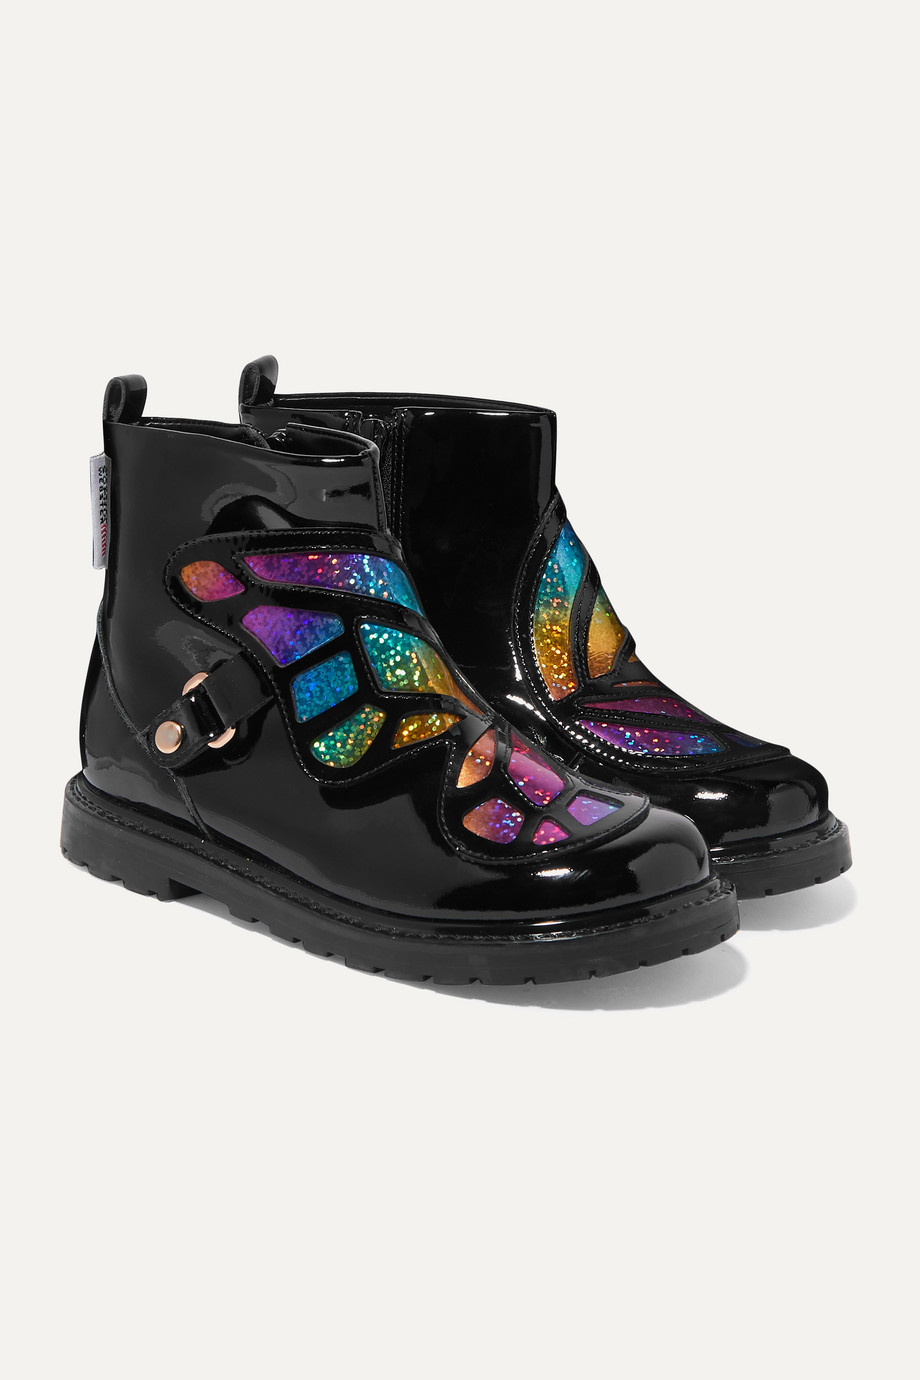 Sophia Webster Kids Size 21 - 34 Karina Butterfly glittered patent-leather boots